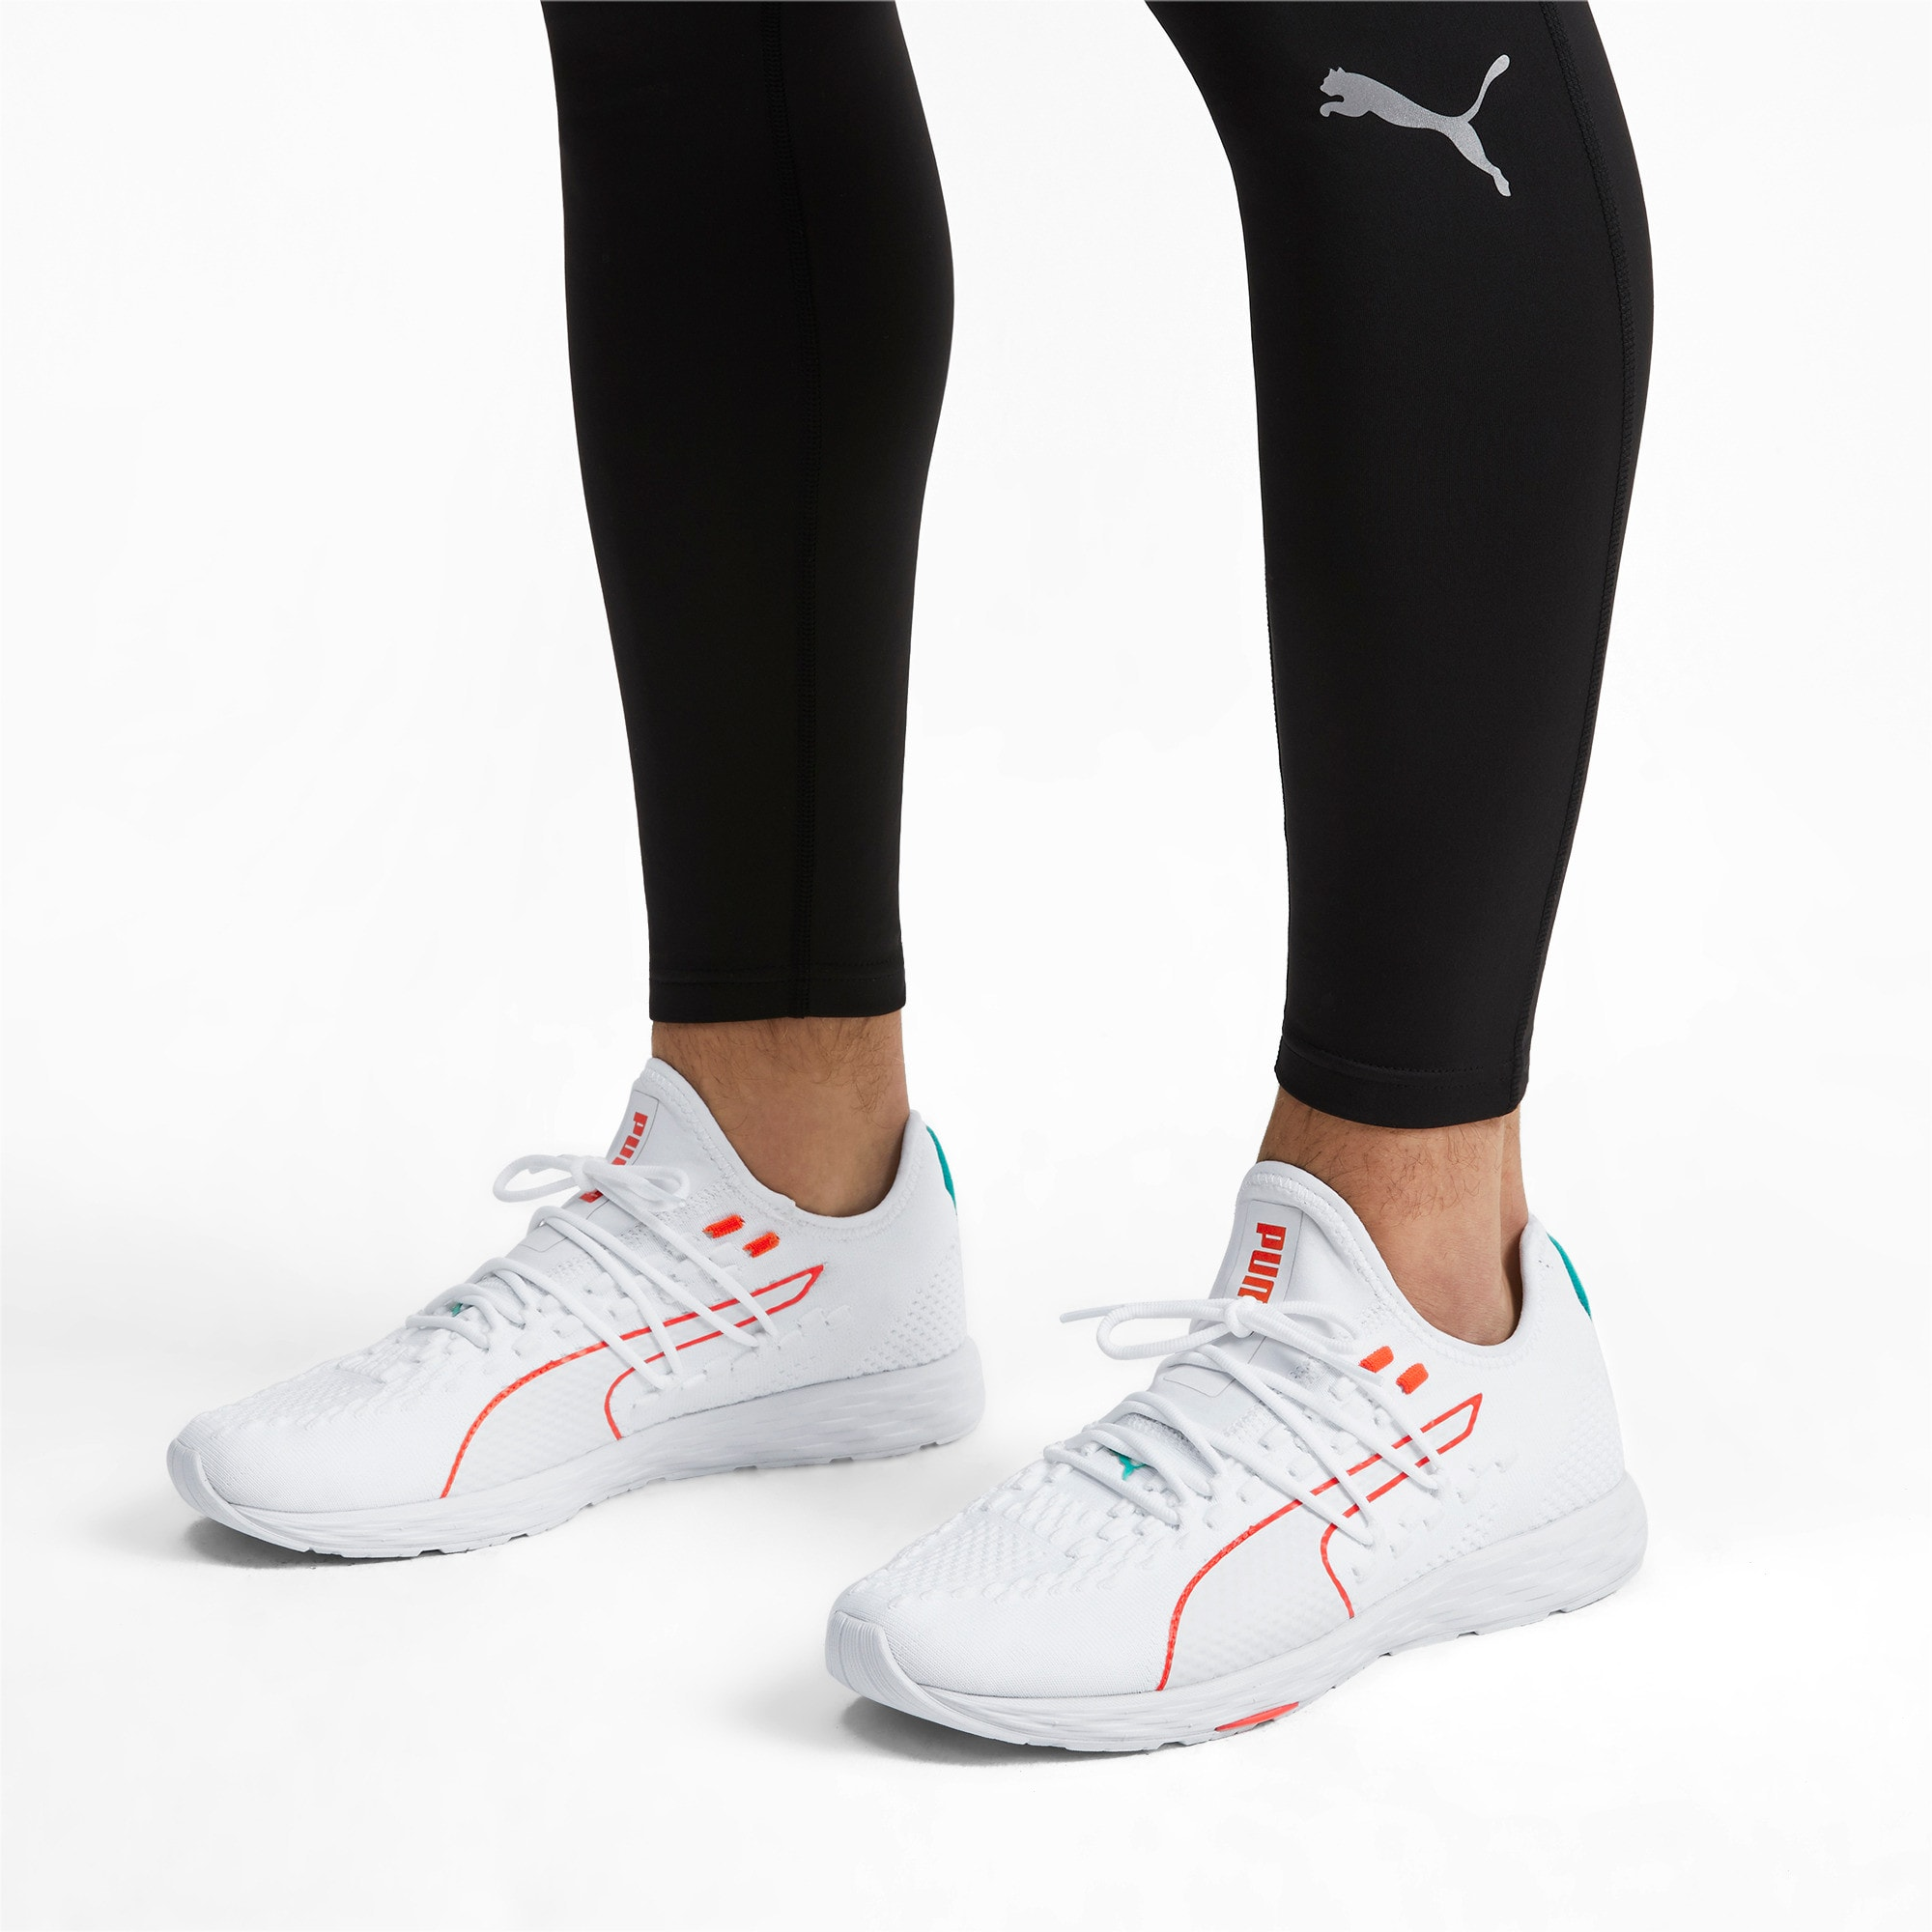 Thumbnail 2 of SPEED RACER Running Shoes, White-Nrgy Red-Turquoise, medium